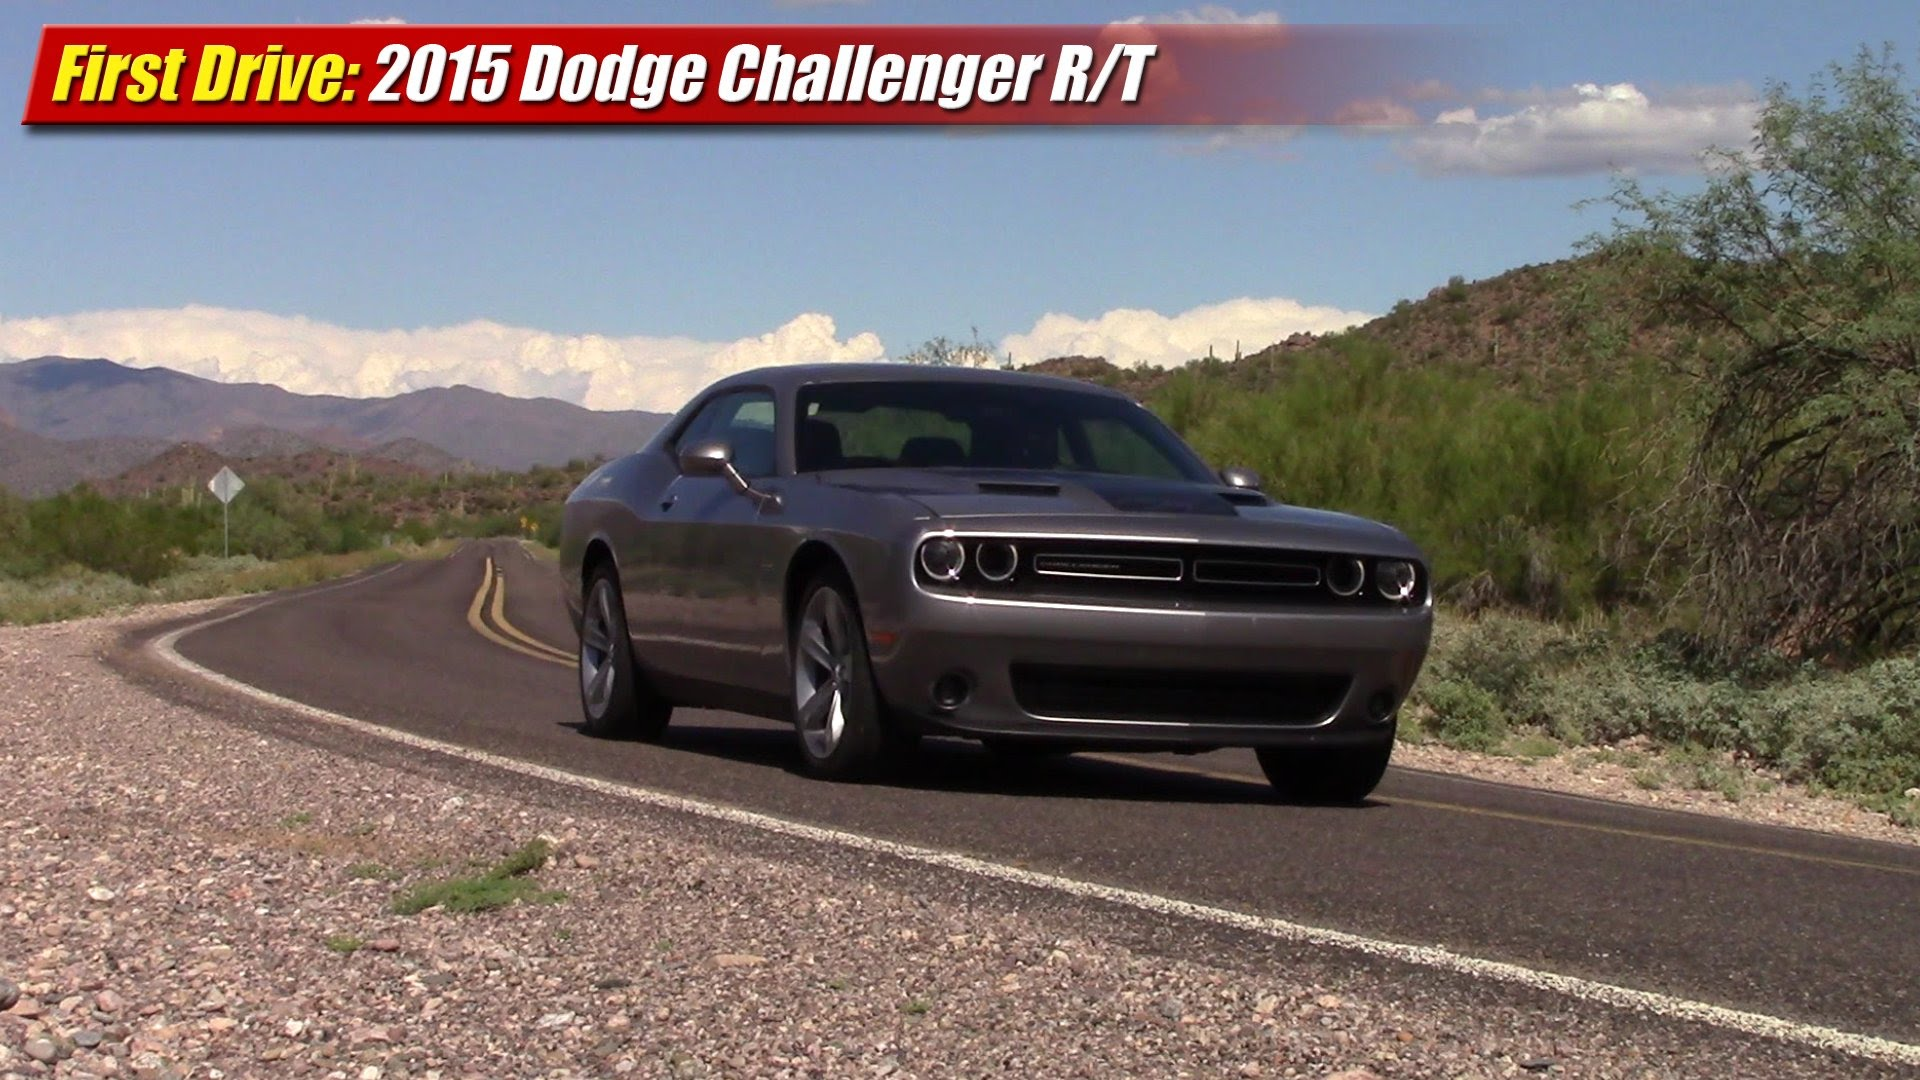 challenger r rt rk t motors hd classic vehicles dodge and performance